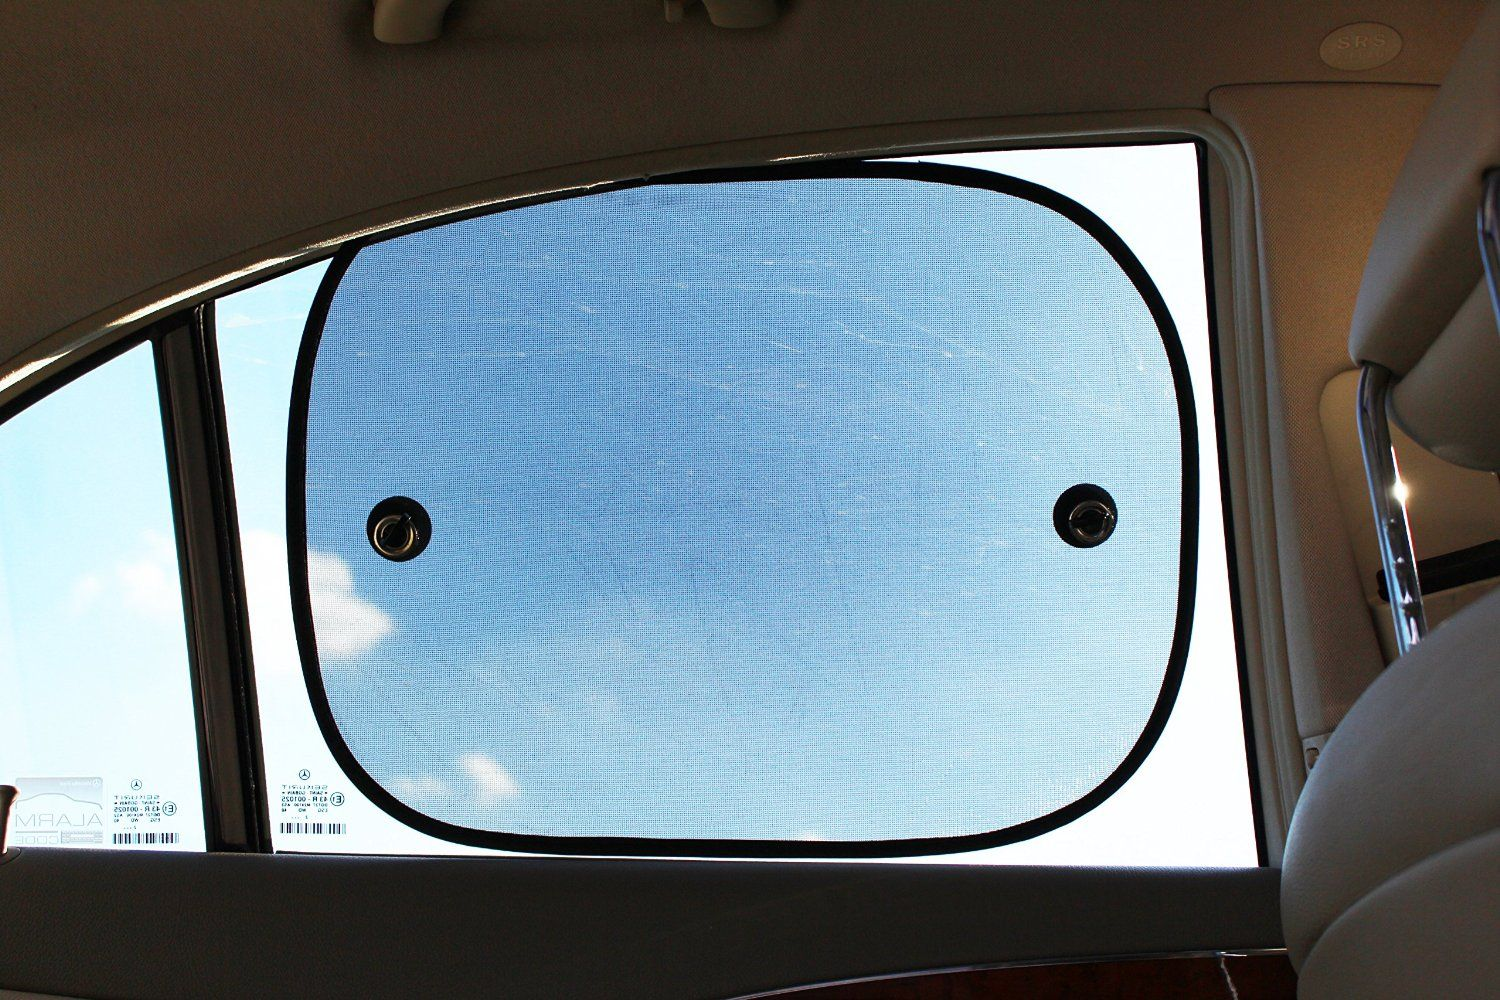 Amazon.com : Car Window Shade - Window Shades for Car - Best 2 Pack Baby Car Shade for Kids and Adults - Eye Car Shade - Car Window Sun Shade - Car Privacy Shade - Window Shade Baby - Cheapest Baby Sun Shade with Excellent Quality - Great Protection Car Window Shade for Travel, Trips, or Just for Shade - Better Than Britax and Brica - Pop Open Window Shade Cling That Folds to the Size of Your Hand - Twice As Strong As Competitors - Lifetime Money Back Guarantee : Baby